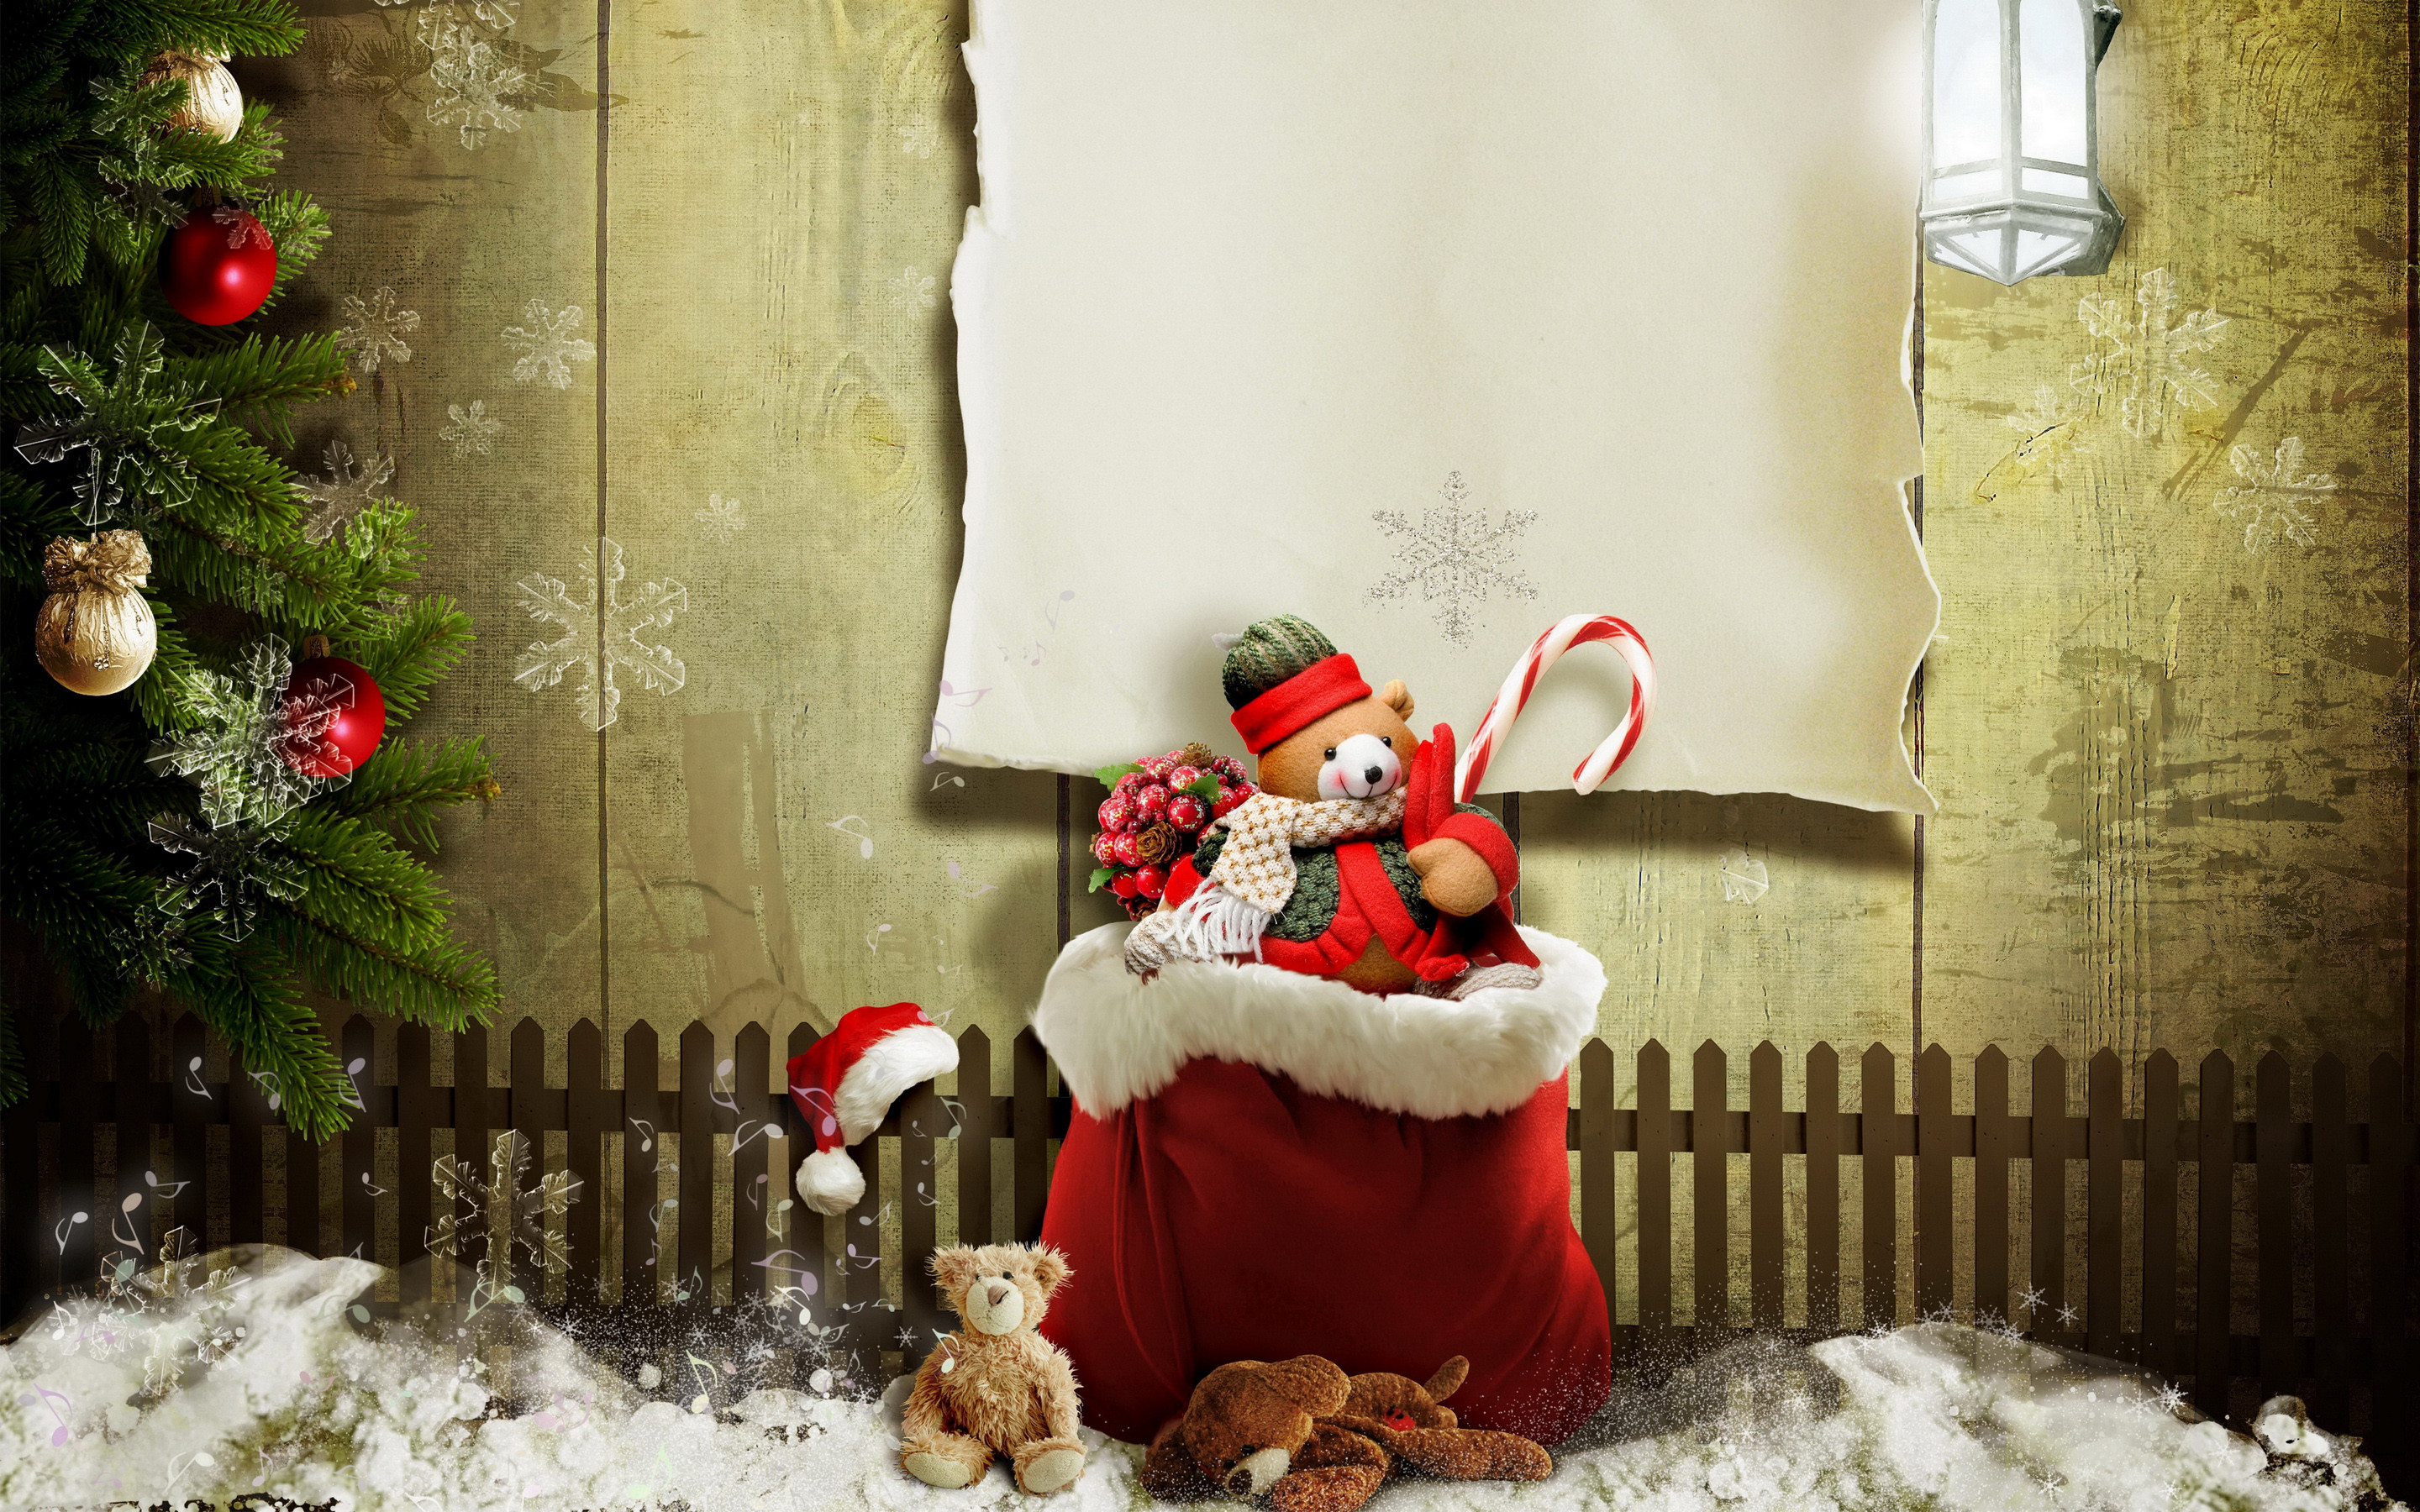 Res: 2880x1800, Christmas Presents Gifts Wallpaper